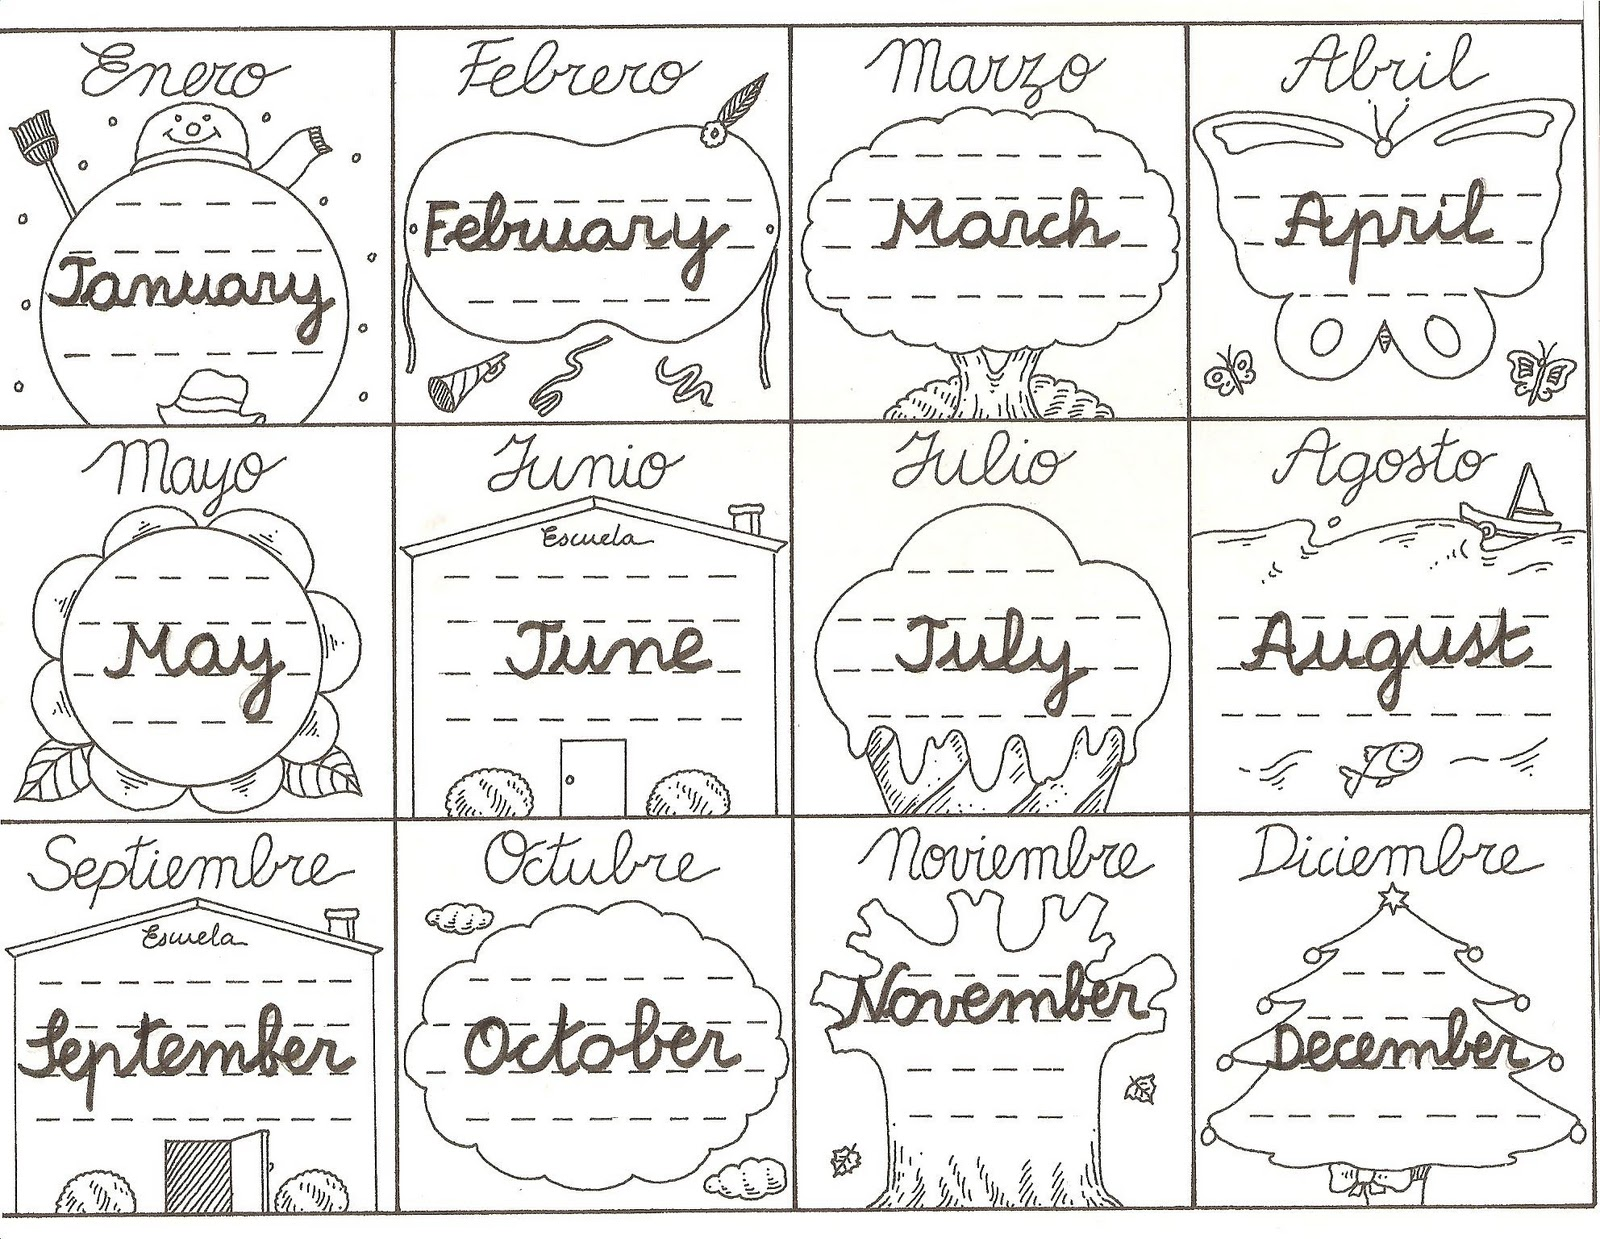 Bilingual Al Yussana Basic English Months Of The Year